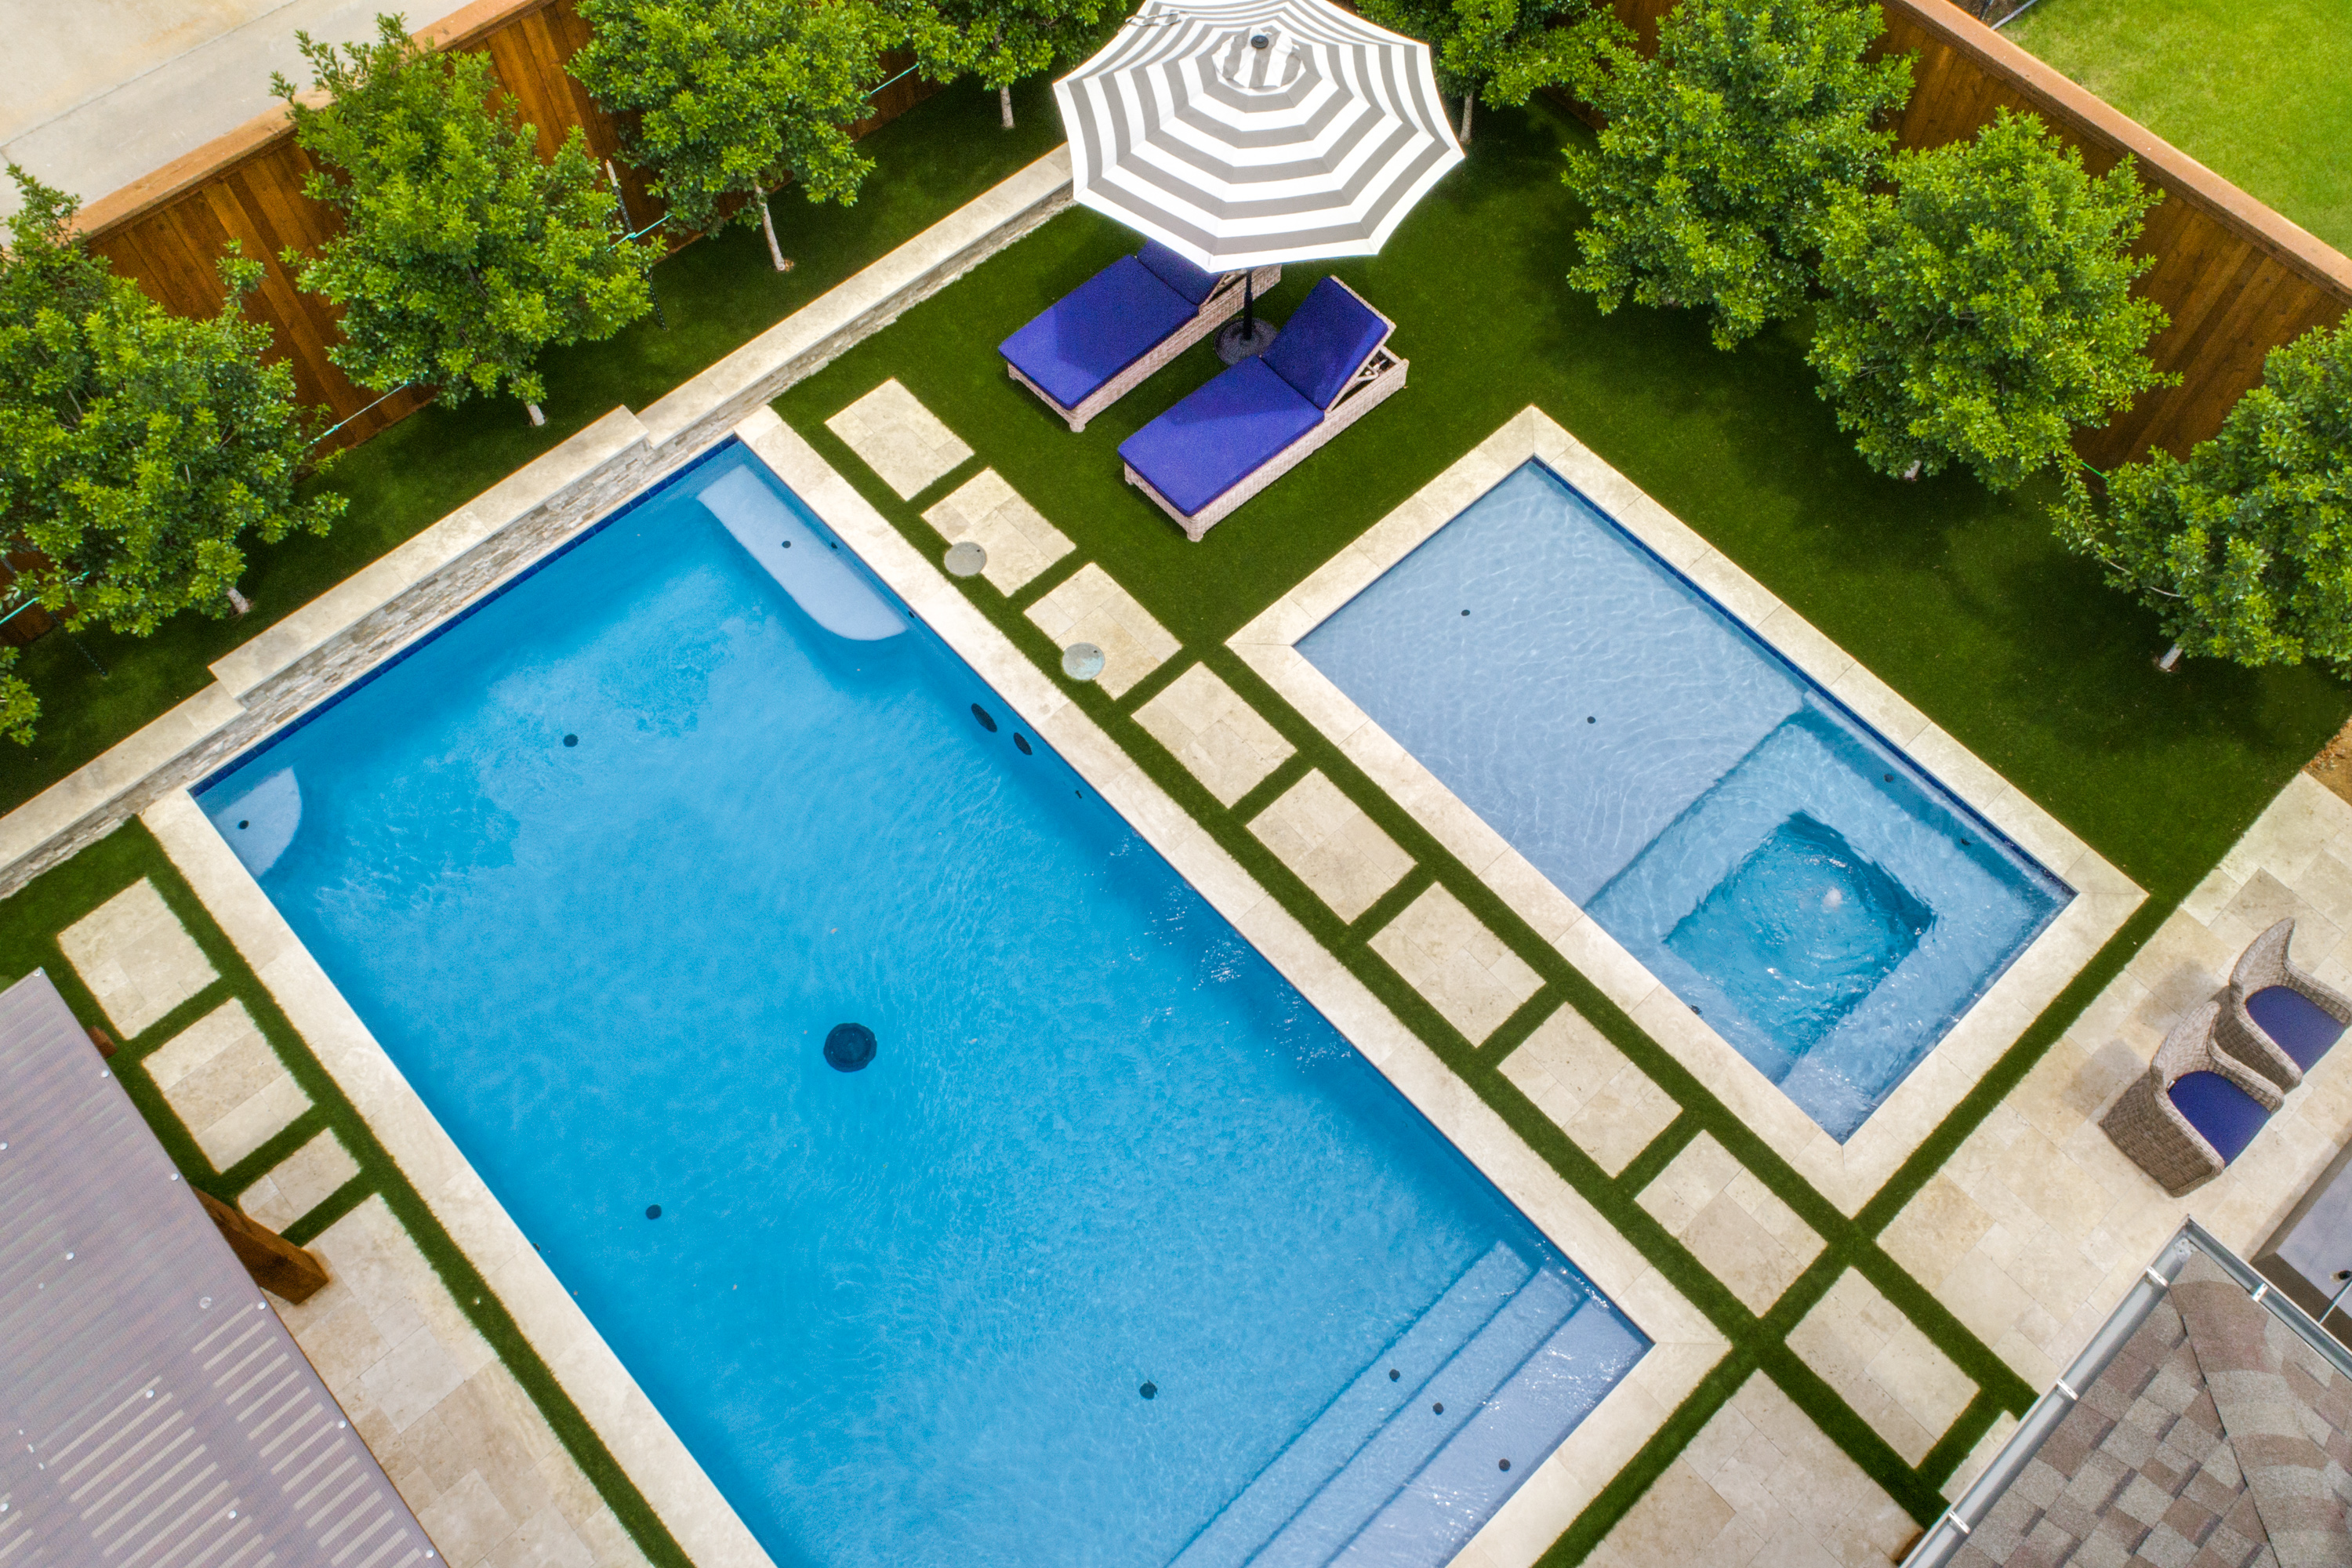 Gold_Medal_Pools-Residential_Pool_Straight_Line_Style-Frisco-TX-15